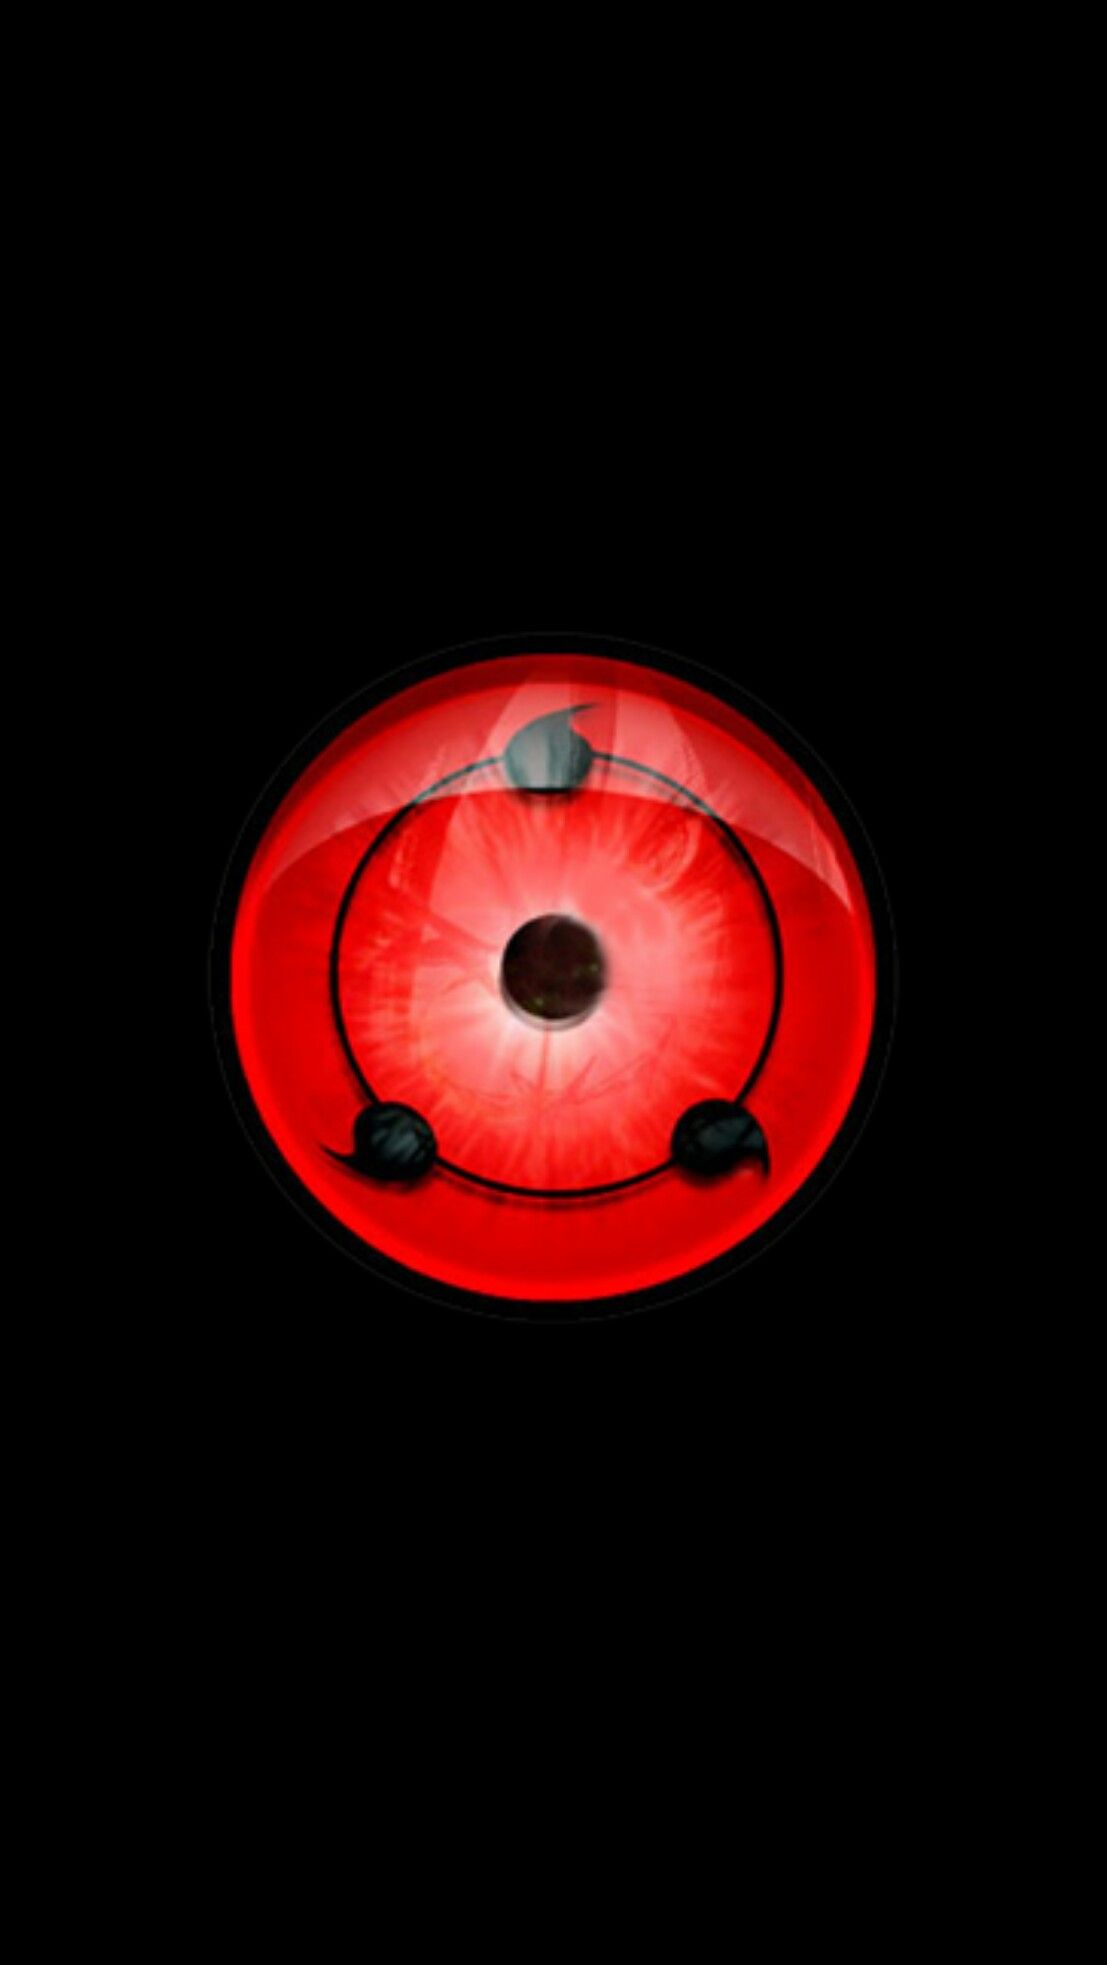 naruto sharingan android ios wallpaper black